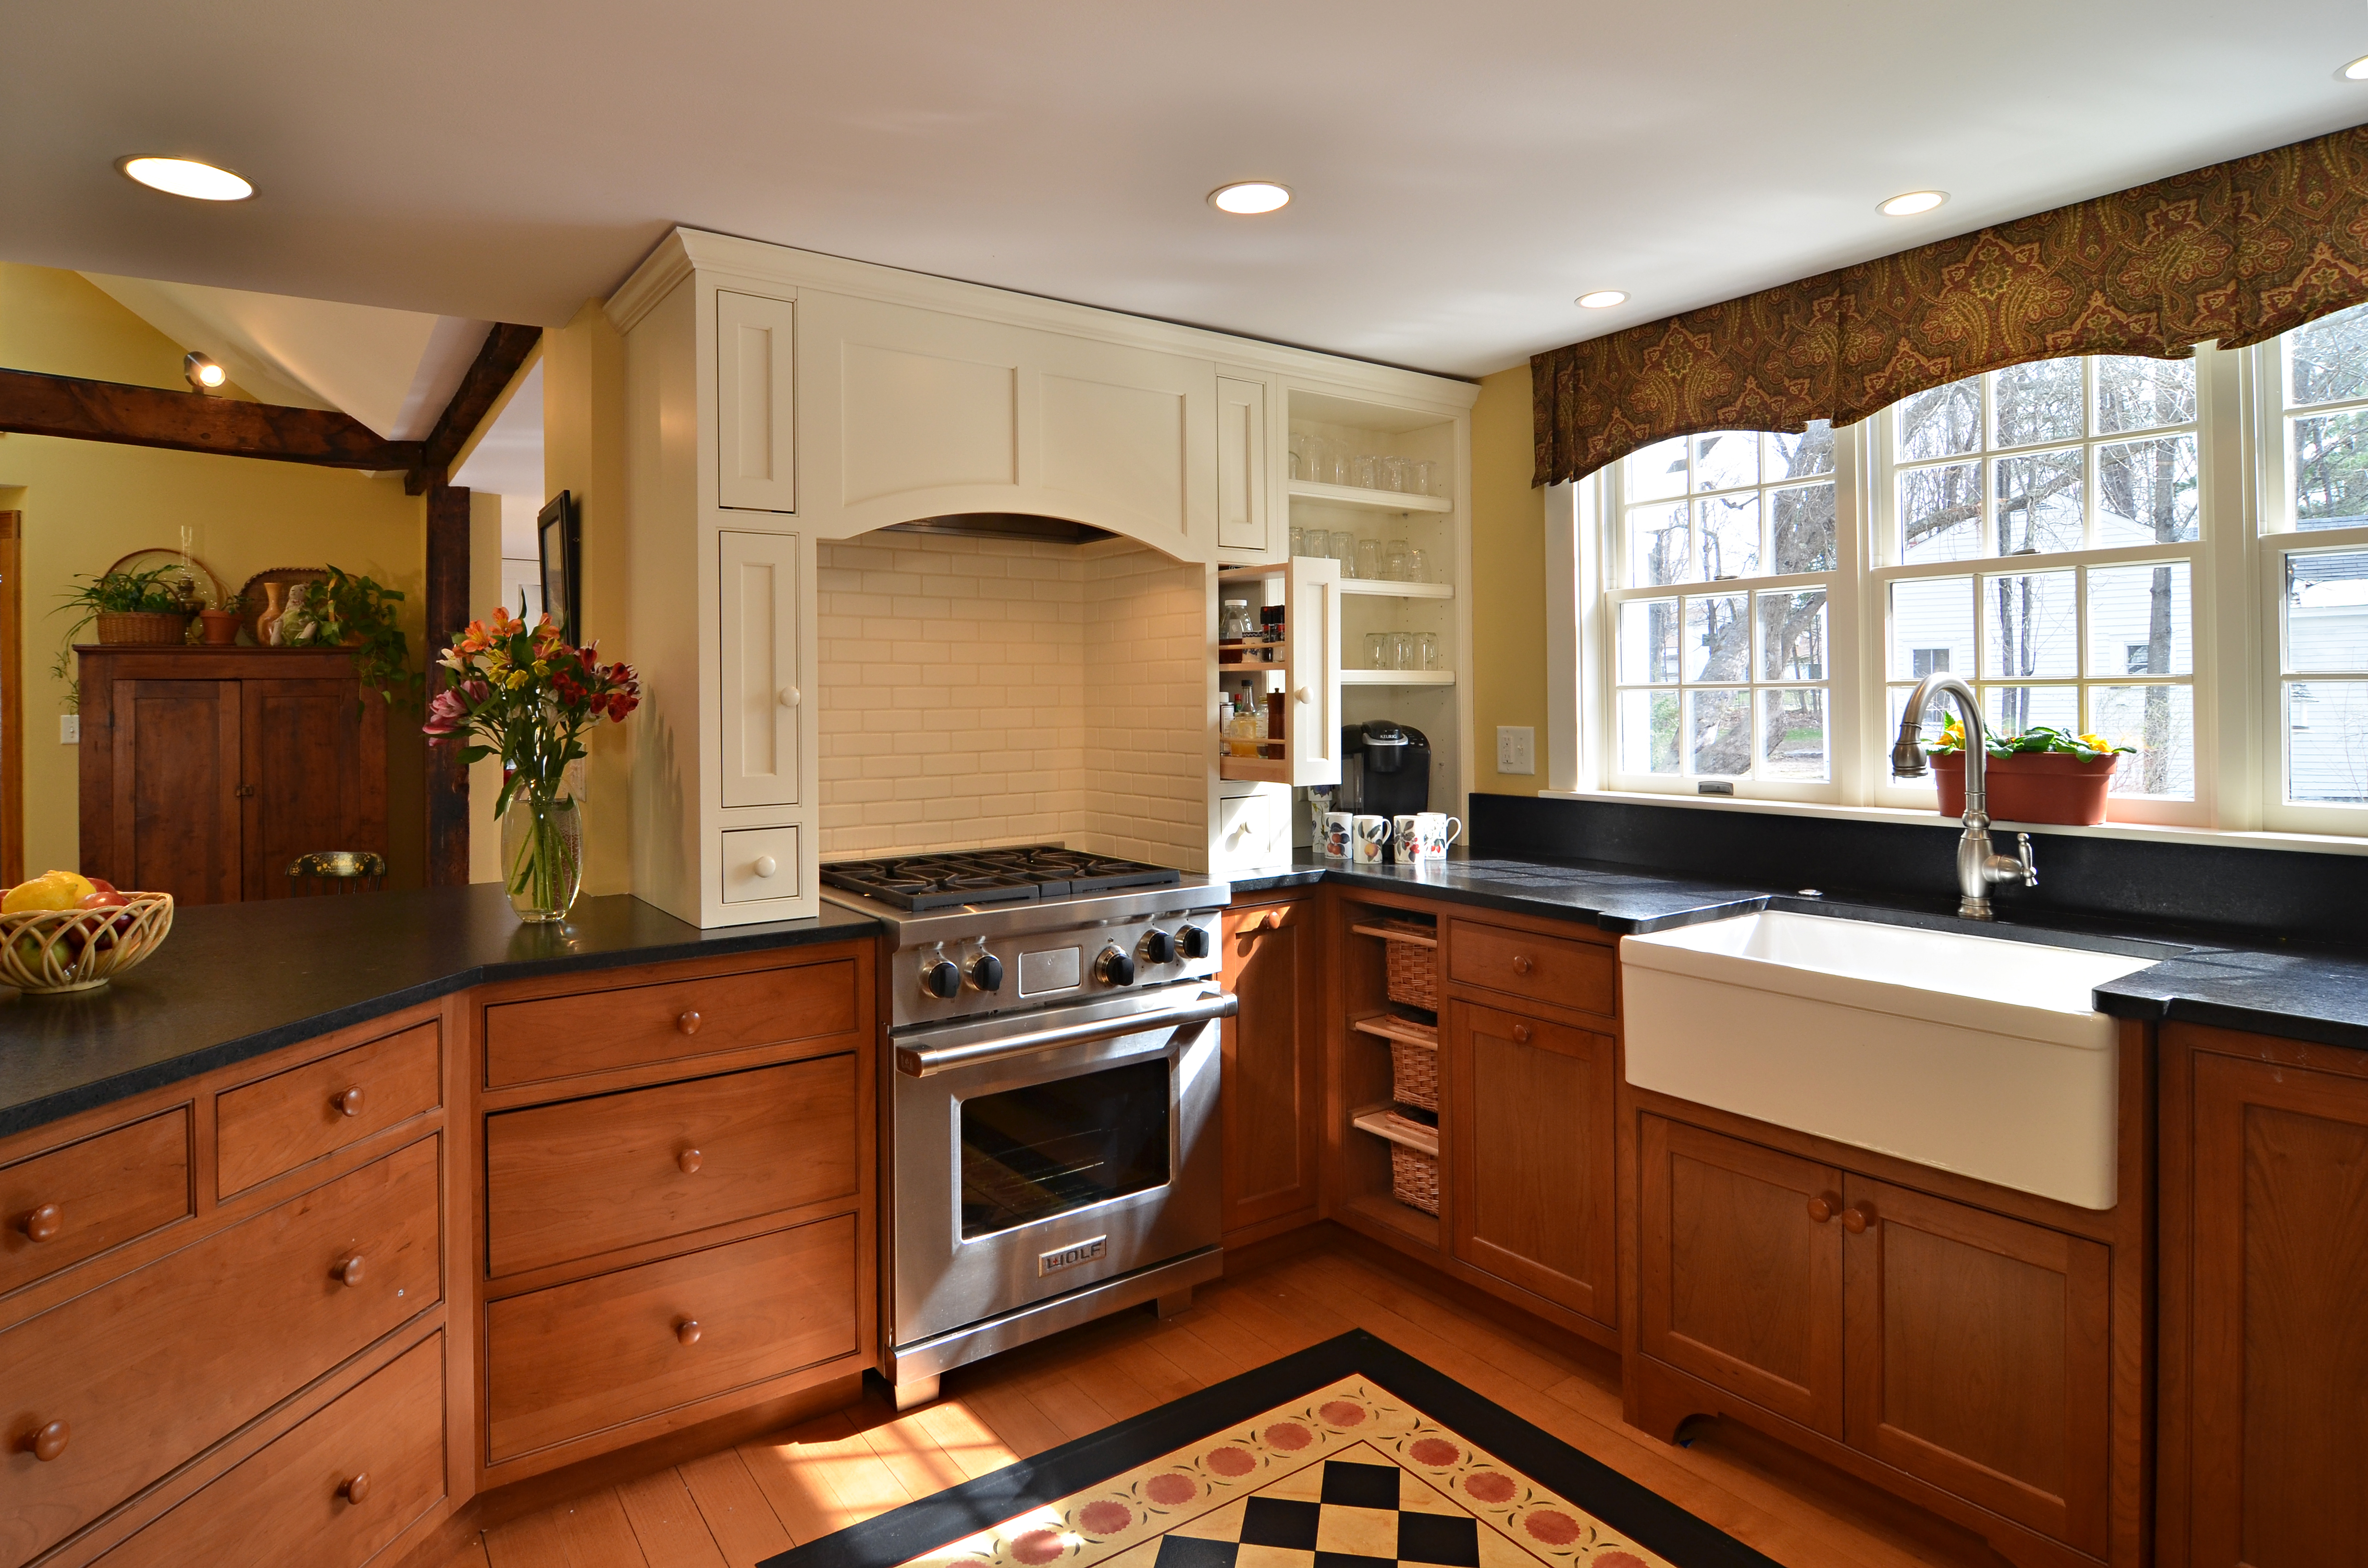 Antique Home Amherst Nh Currier Kitchens